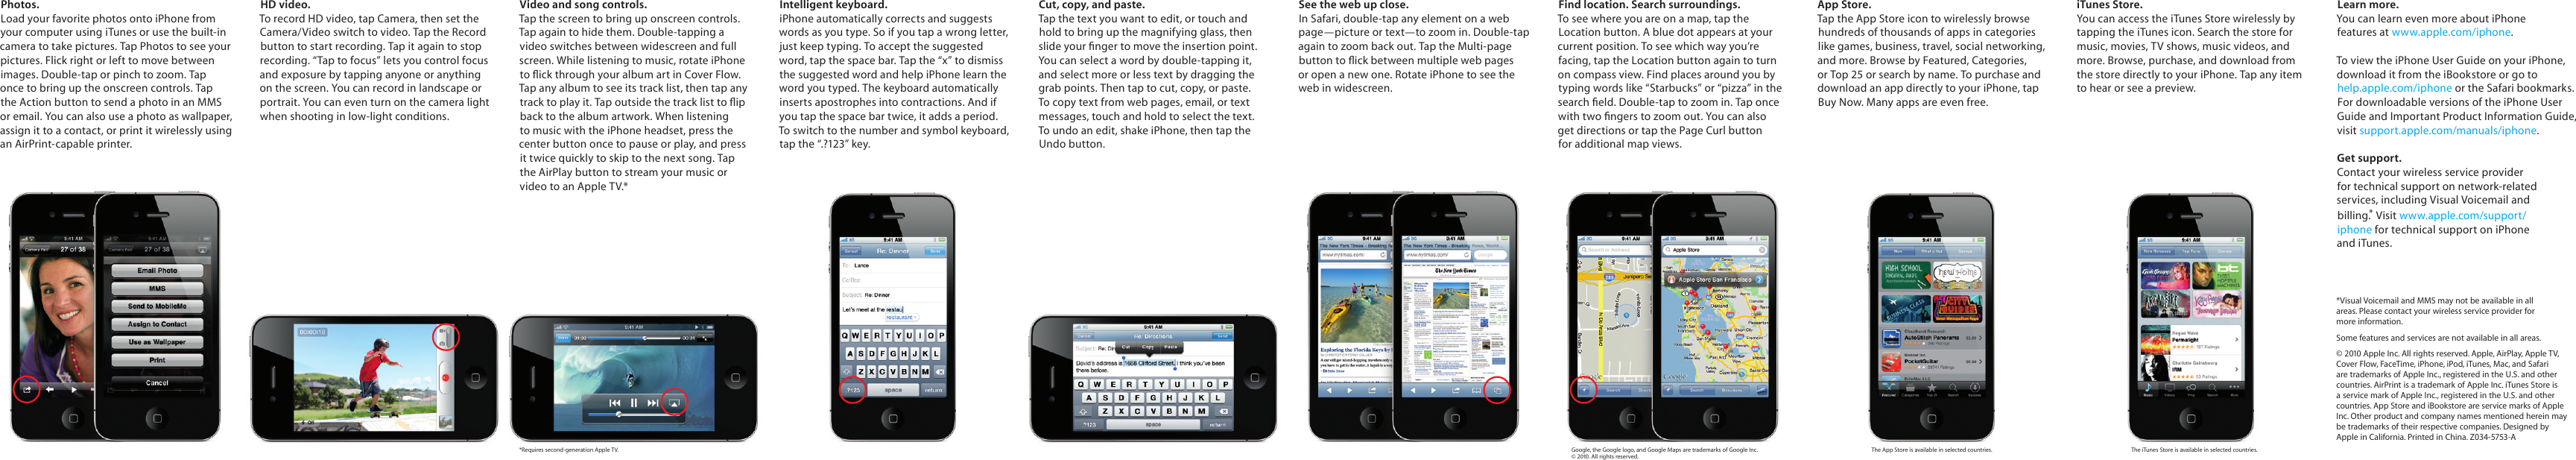 Page 2 of 2 - Apple Apple-Iphone-4-Quick-Start-